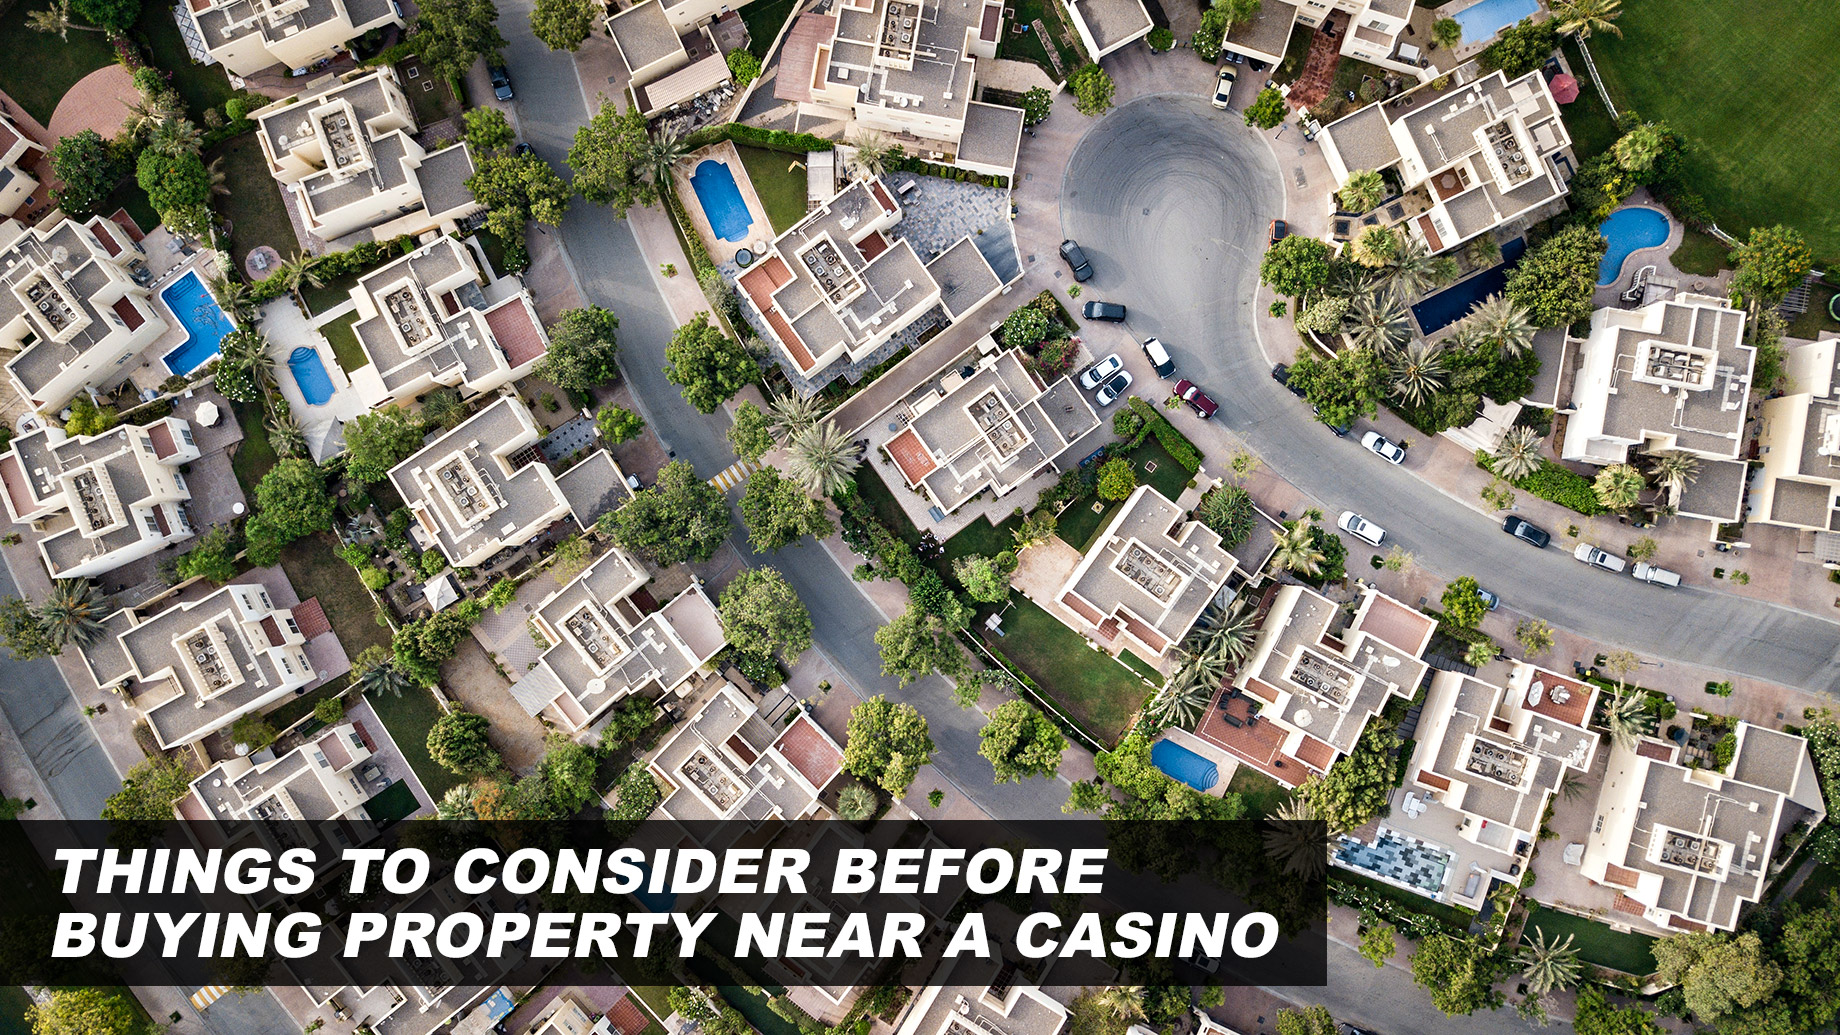 Things to Consider Before Buying Property Near a Casino